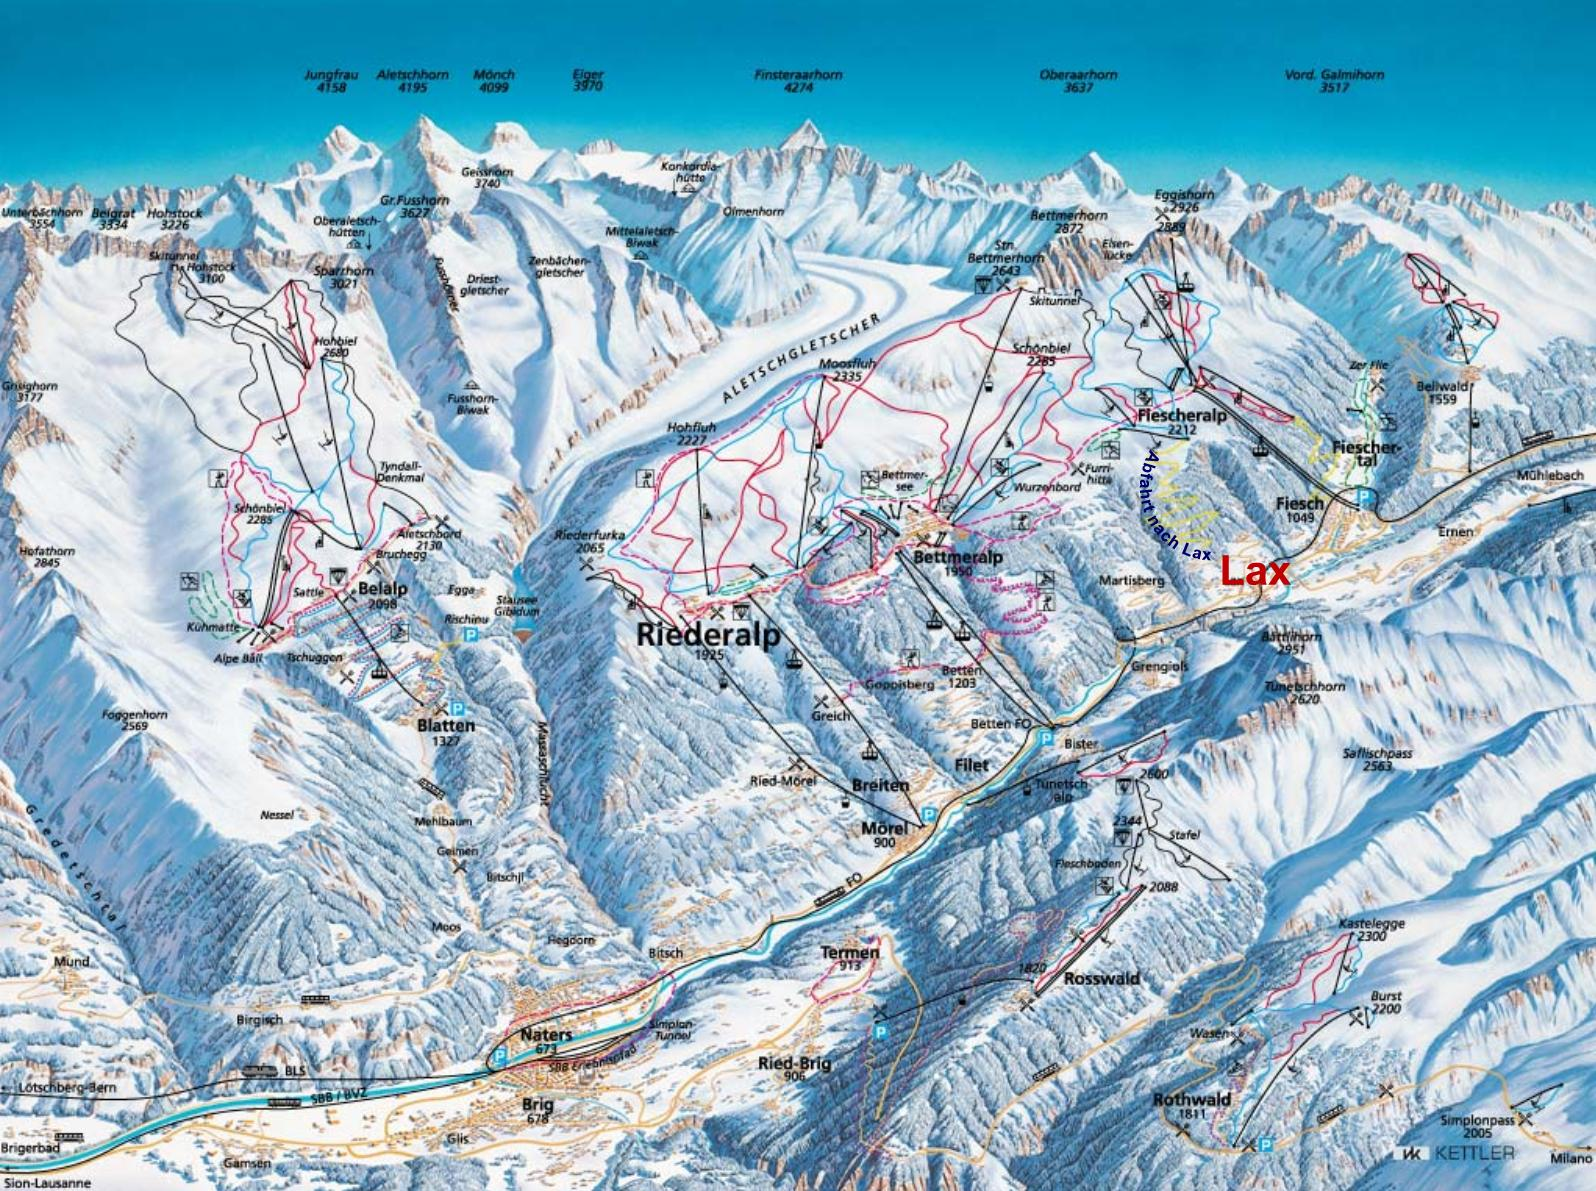 Fiesch piste map